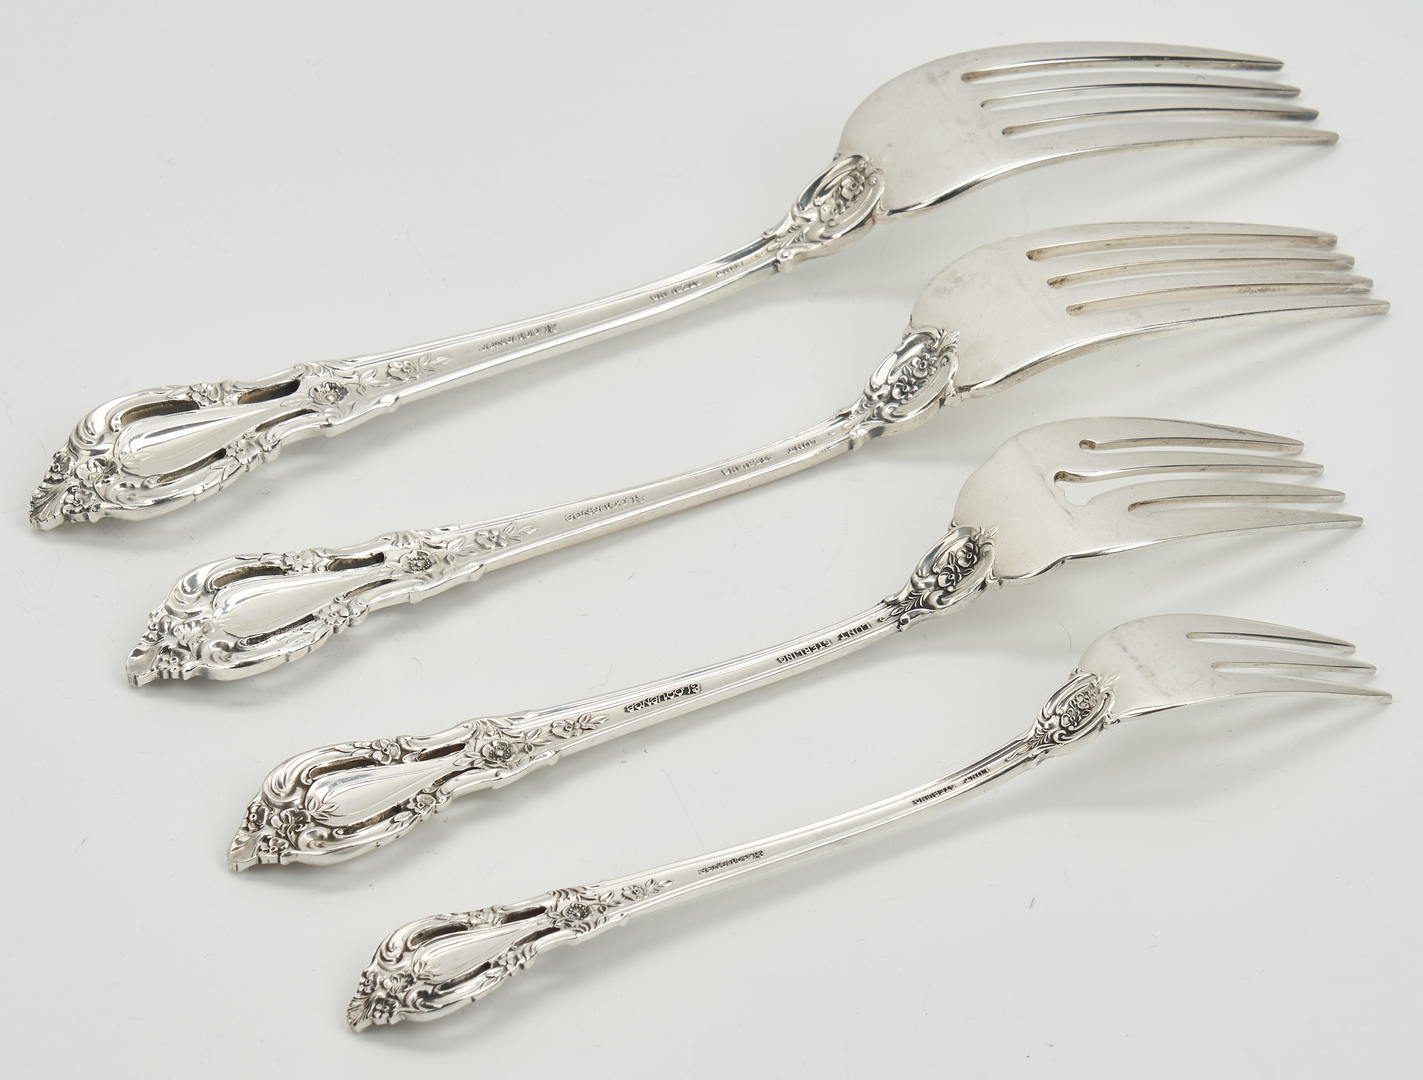 Lot 52: 157 Pcs. Lunt Eloquence Pattern Sterling Silver Flatware